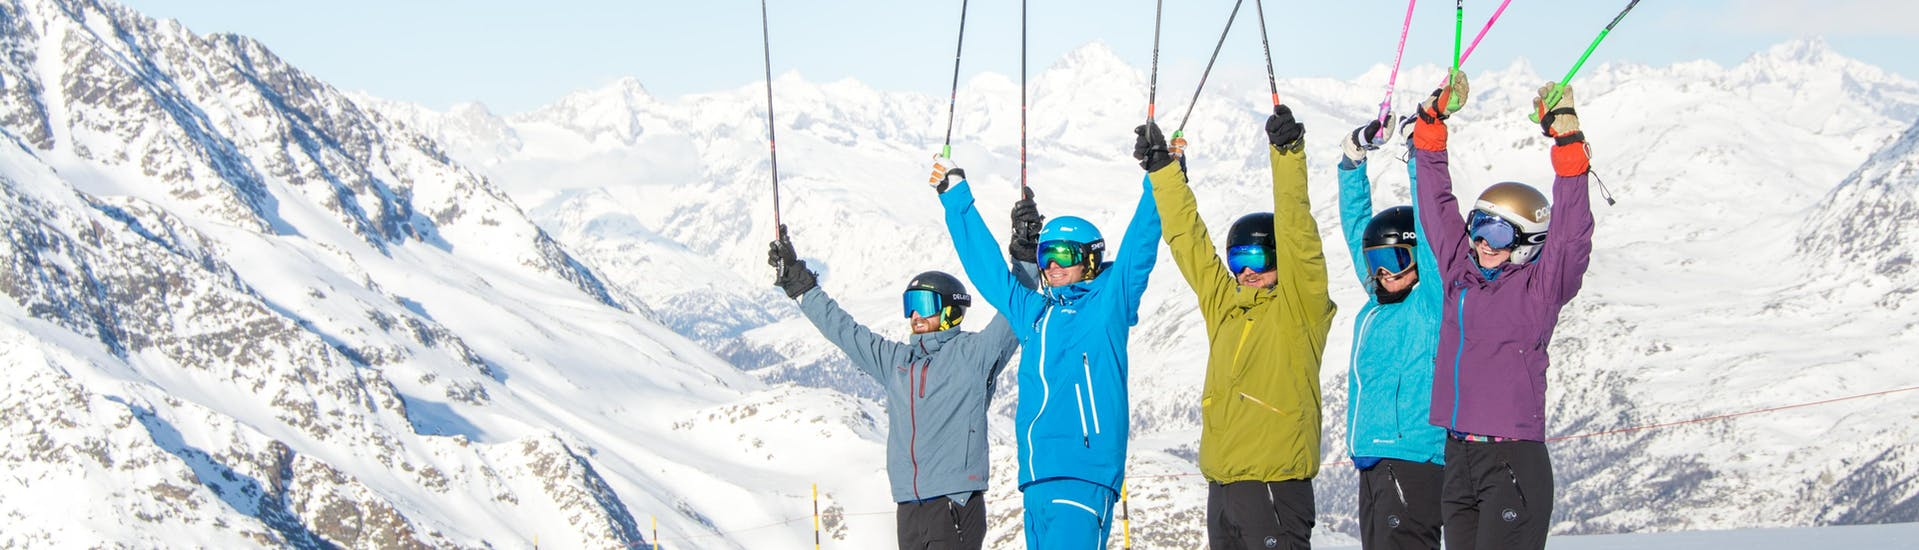 Discovery Adult Ski Lessons for First Timers